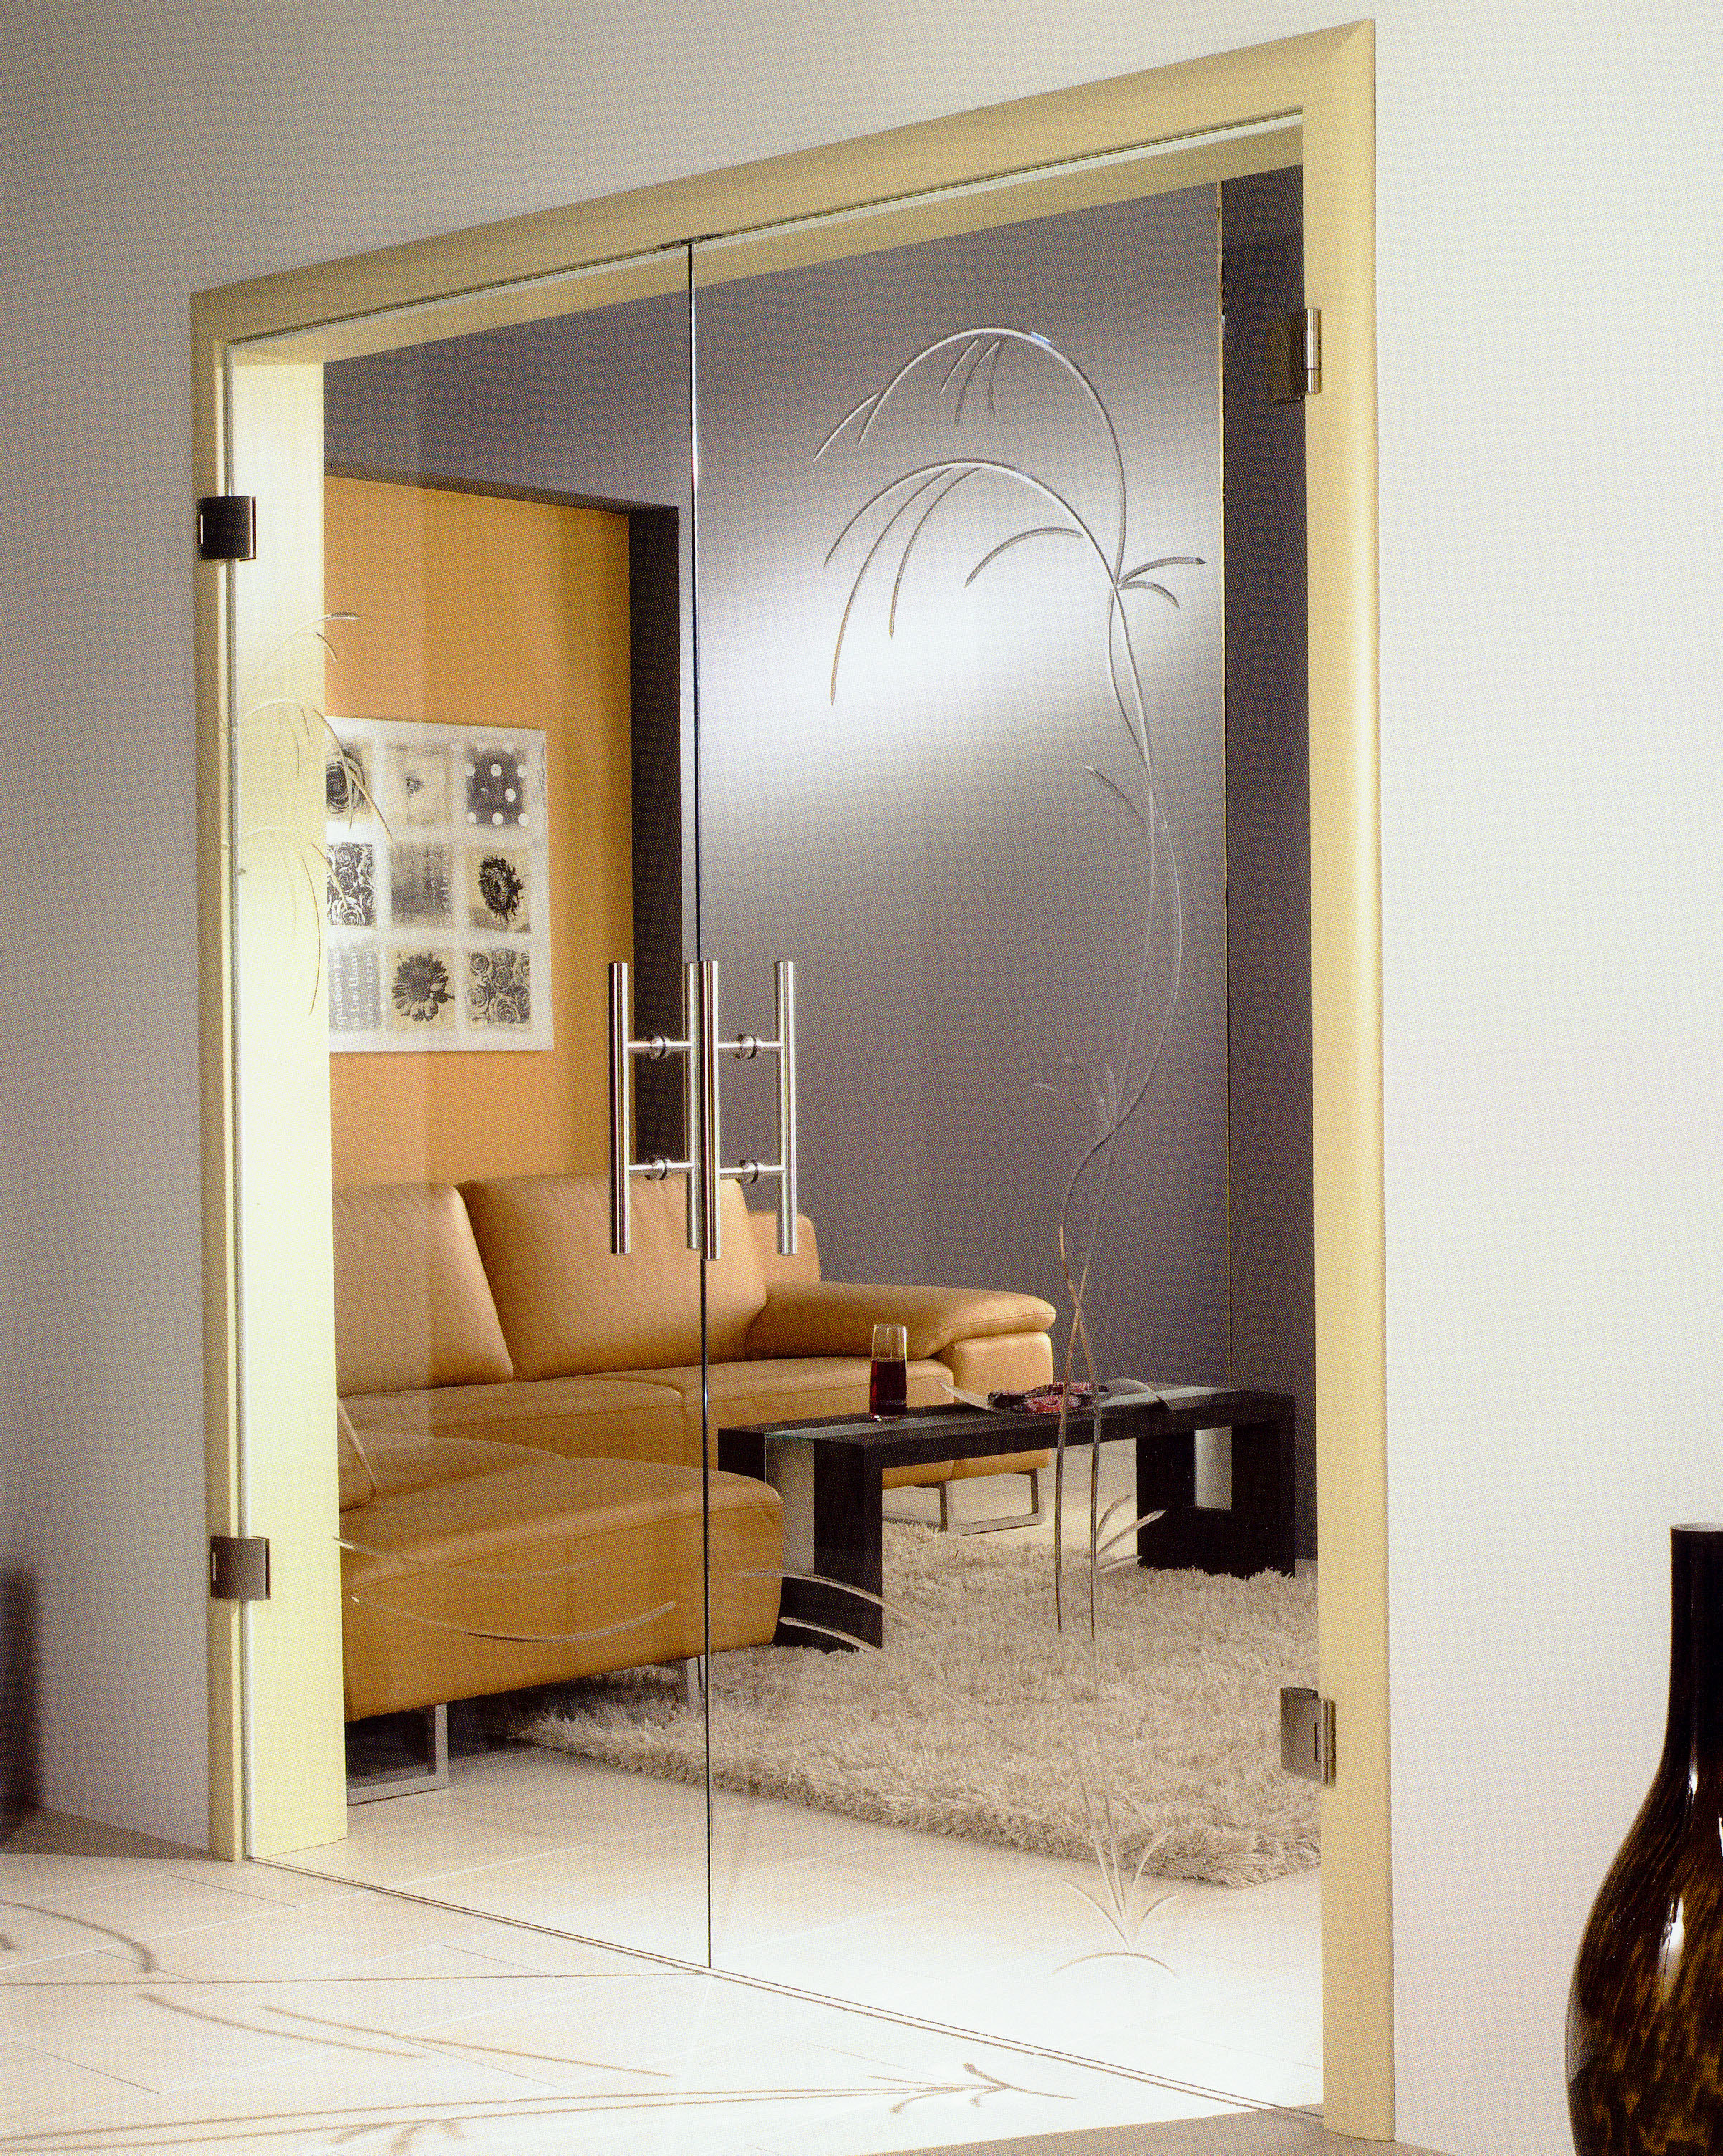 Noblessa Grooved Glass Door Design